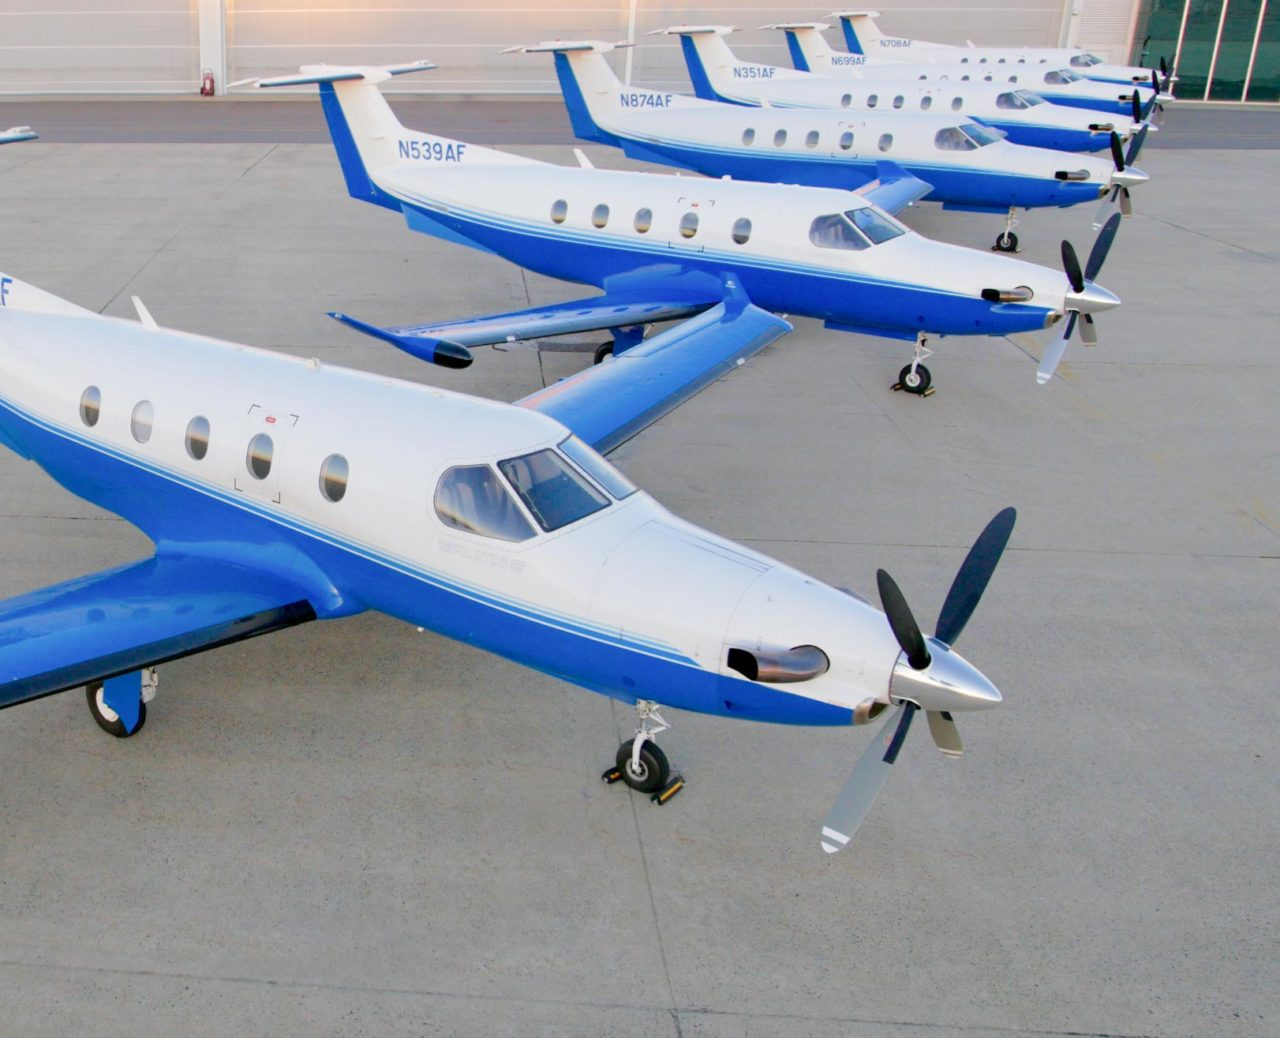 Aviation jobs available at PlaneSense including First Officer on Pilatus PC-12 aircraft